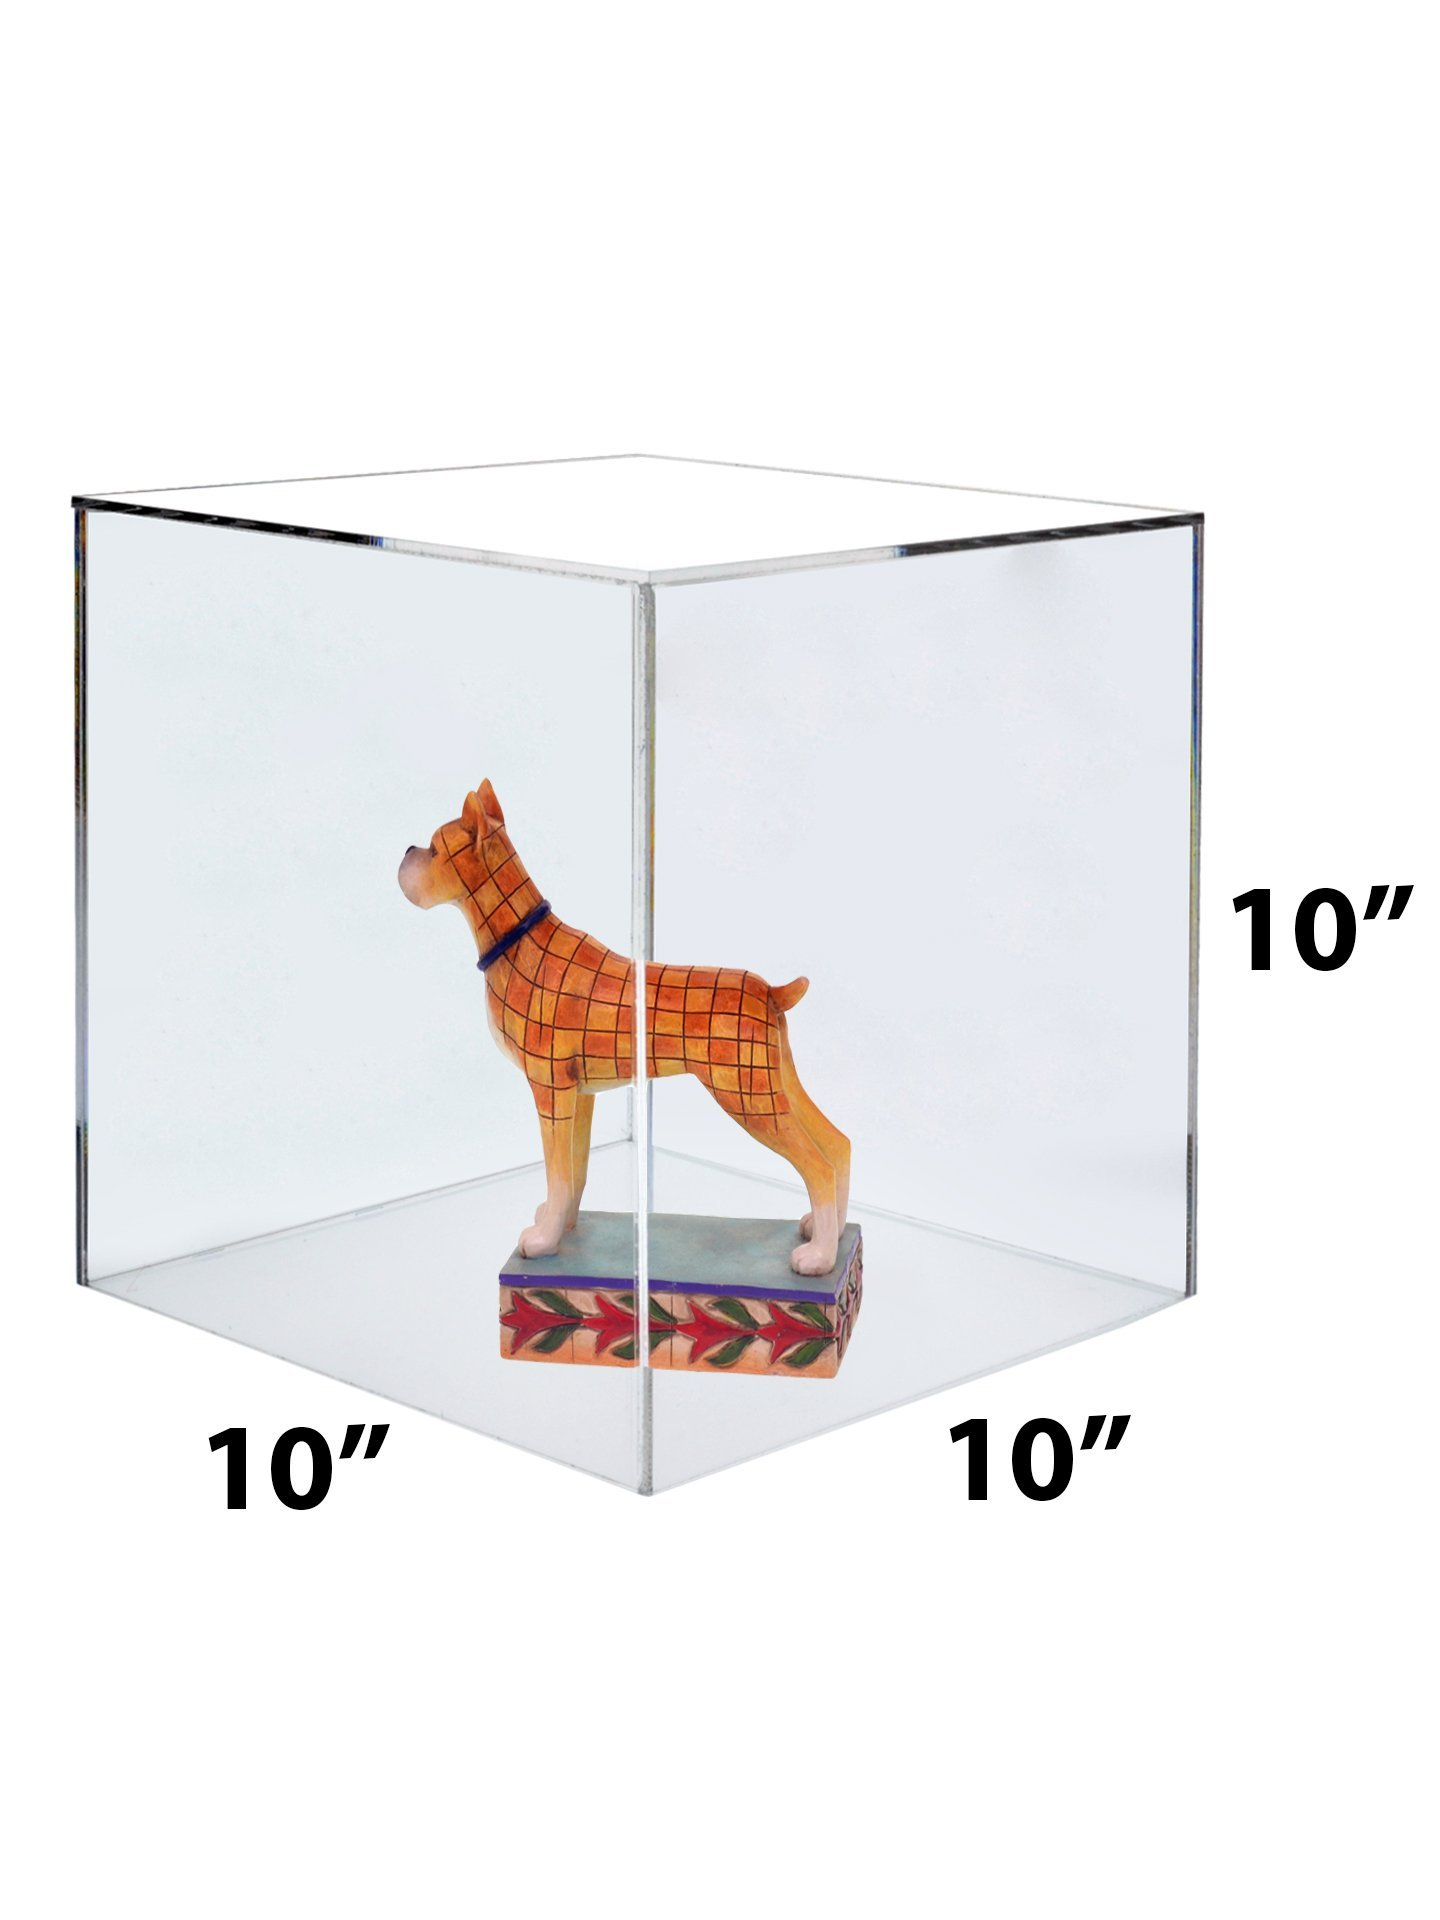 Marketing Holders Large Acrylic Display Box Cube Toys Trinkets Collectible Items Safety Dust Cover Acrylic 5 Sided Show Case Art Easel Pedestal Display (5, 10''w x 10''h) by Marketing Holders (Image #3)